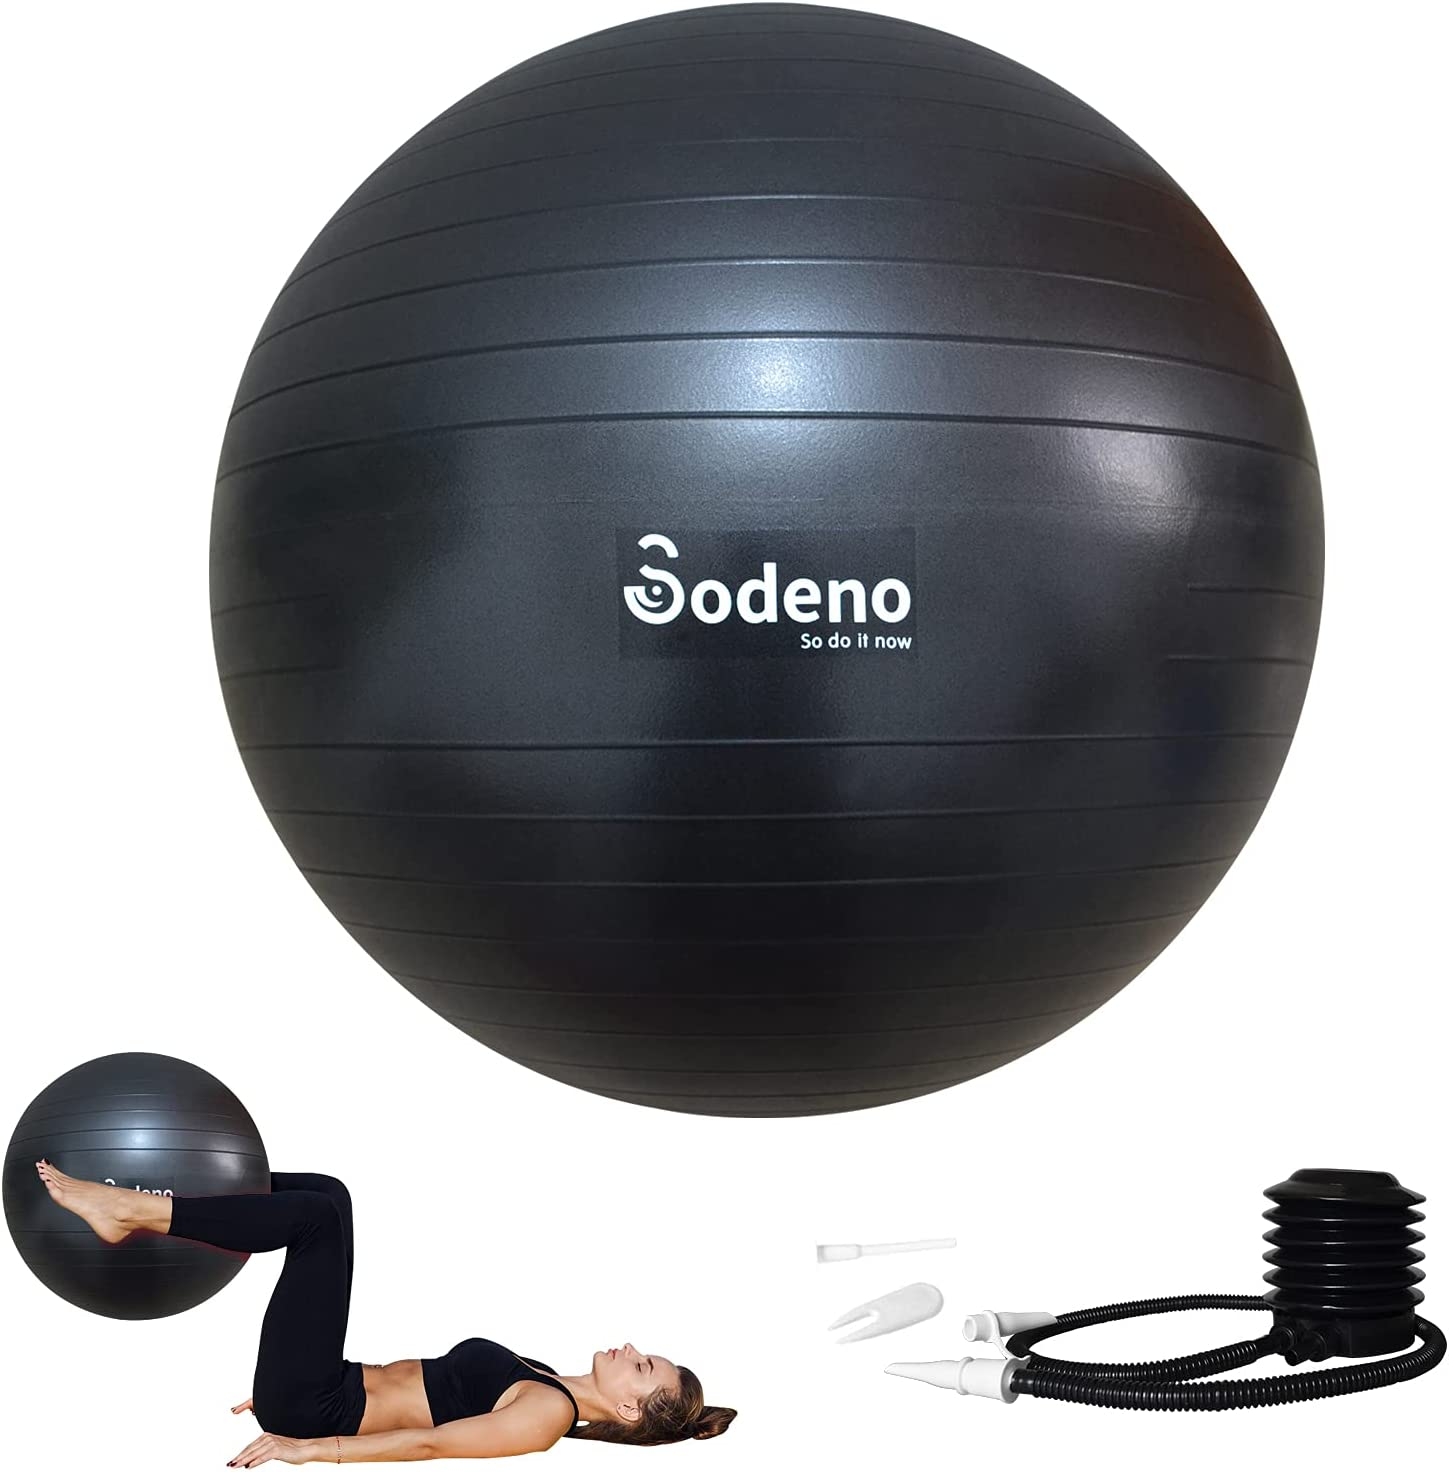 Sodeno New Exercise Ball, 45cm/55cm/65cm/75cm Yoga Fitness Pilates Ball with Quick Pump, Anti-Burst and Slip Resistant Workout Balance Birthing Ball for Home Gym & Office